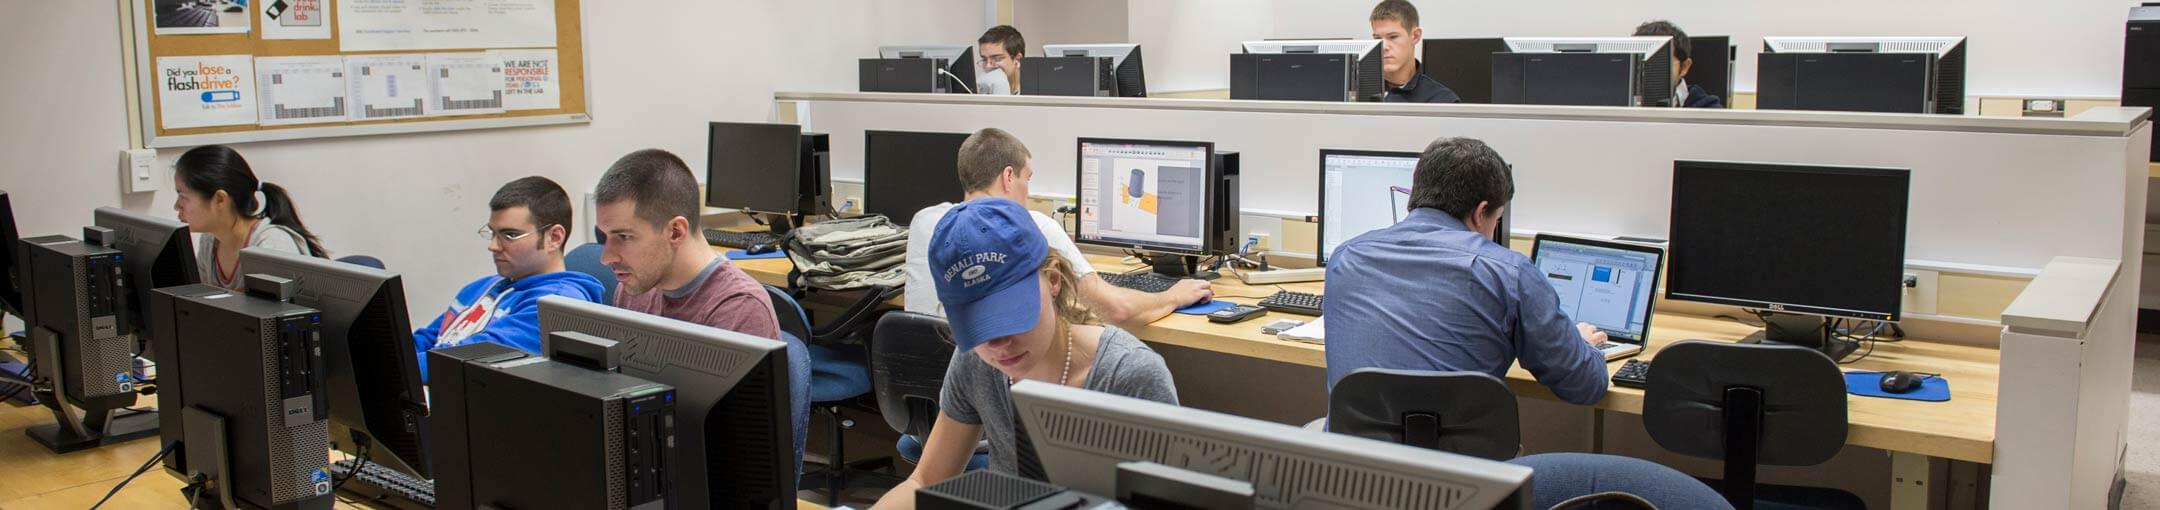 Students working in a computer lab.